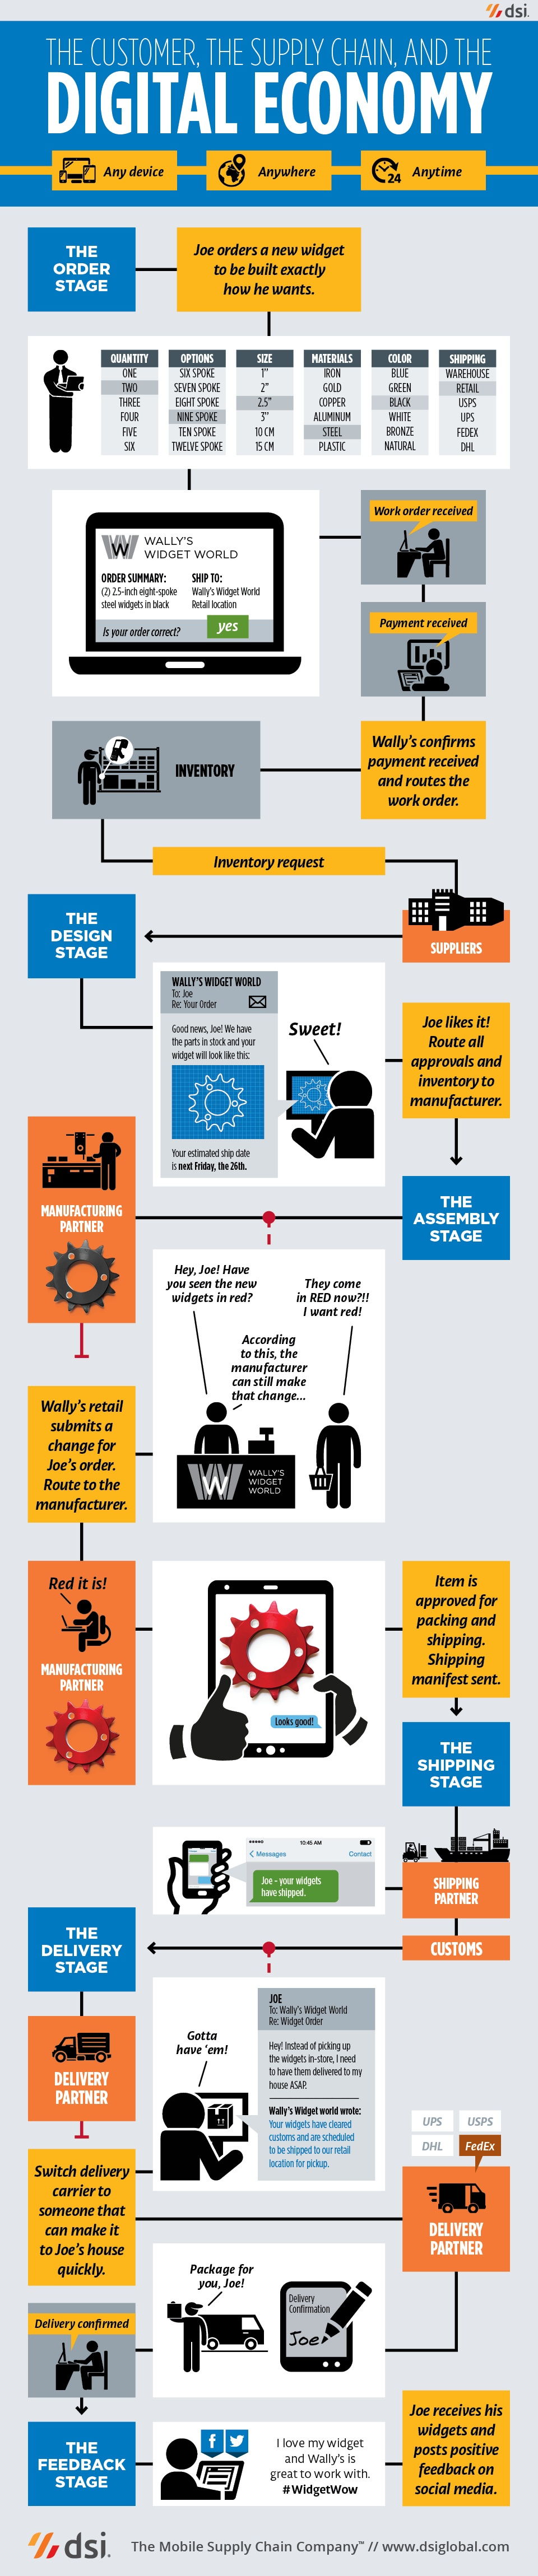 Supply Chain Anywhere Infographic